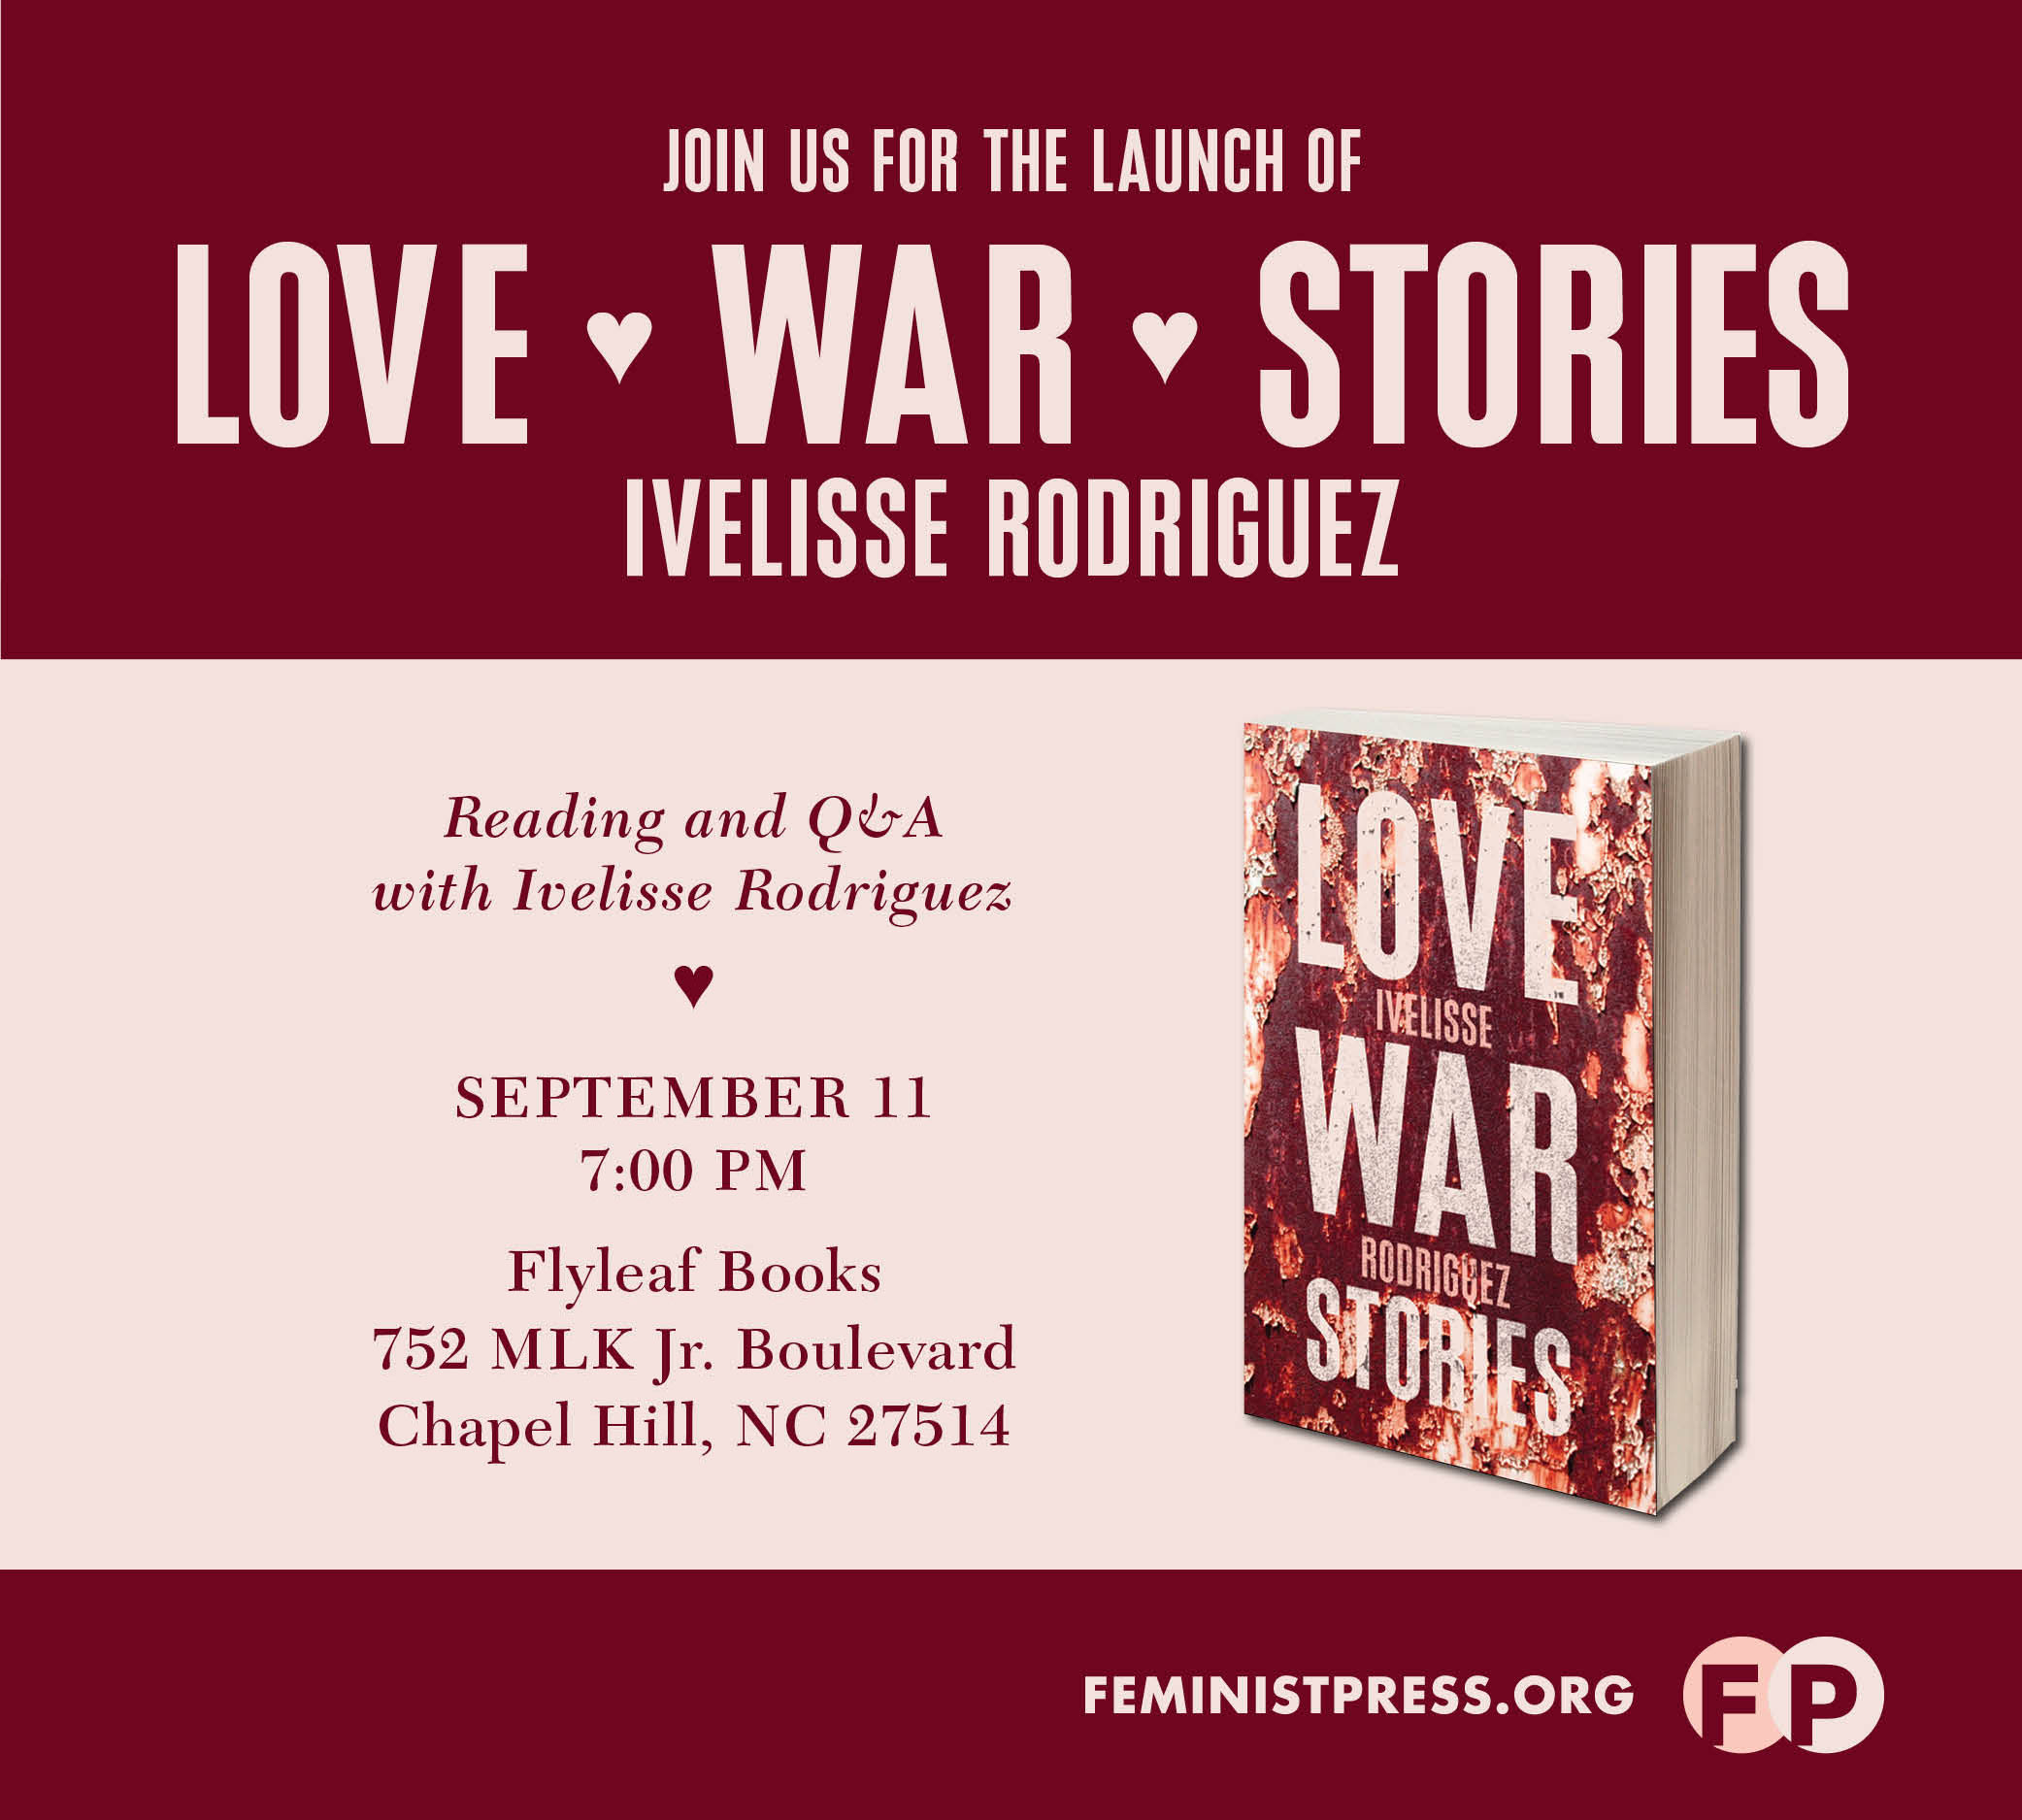 LOVE_WAR_STORIES_Event_eblast_FLYLEAF.jpg